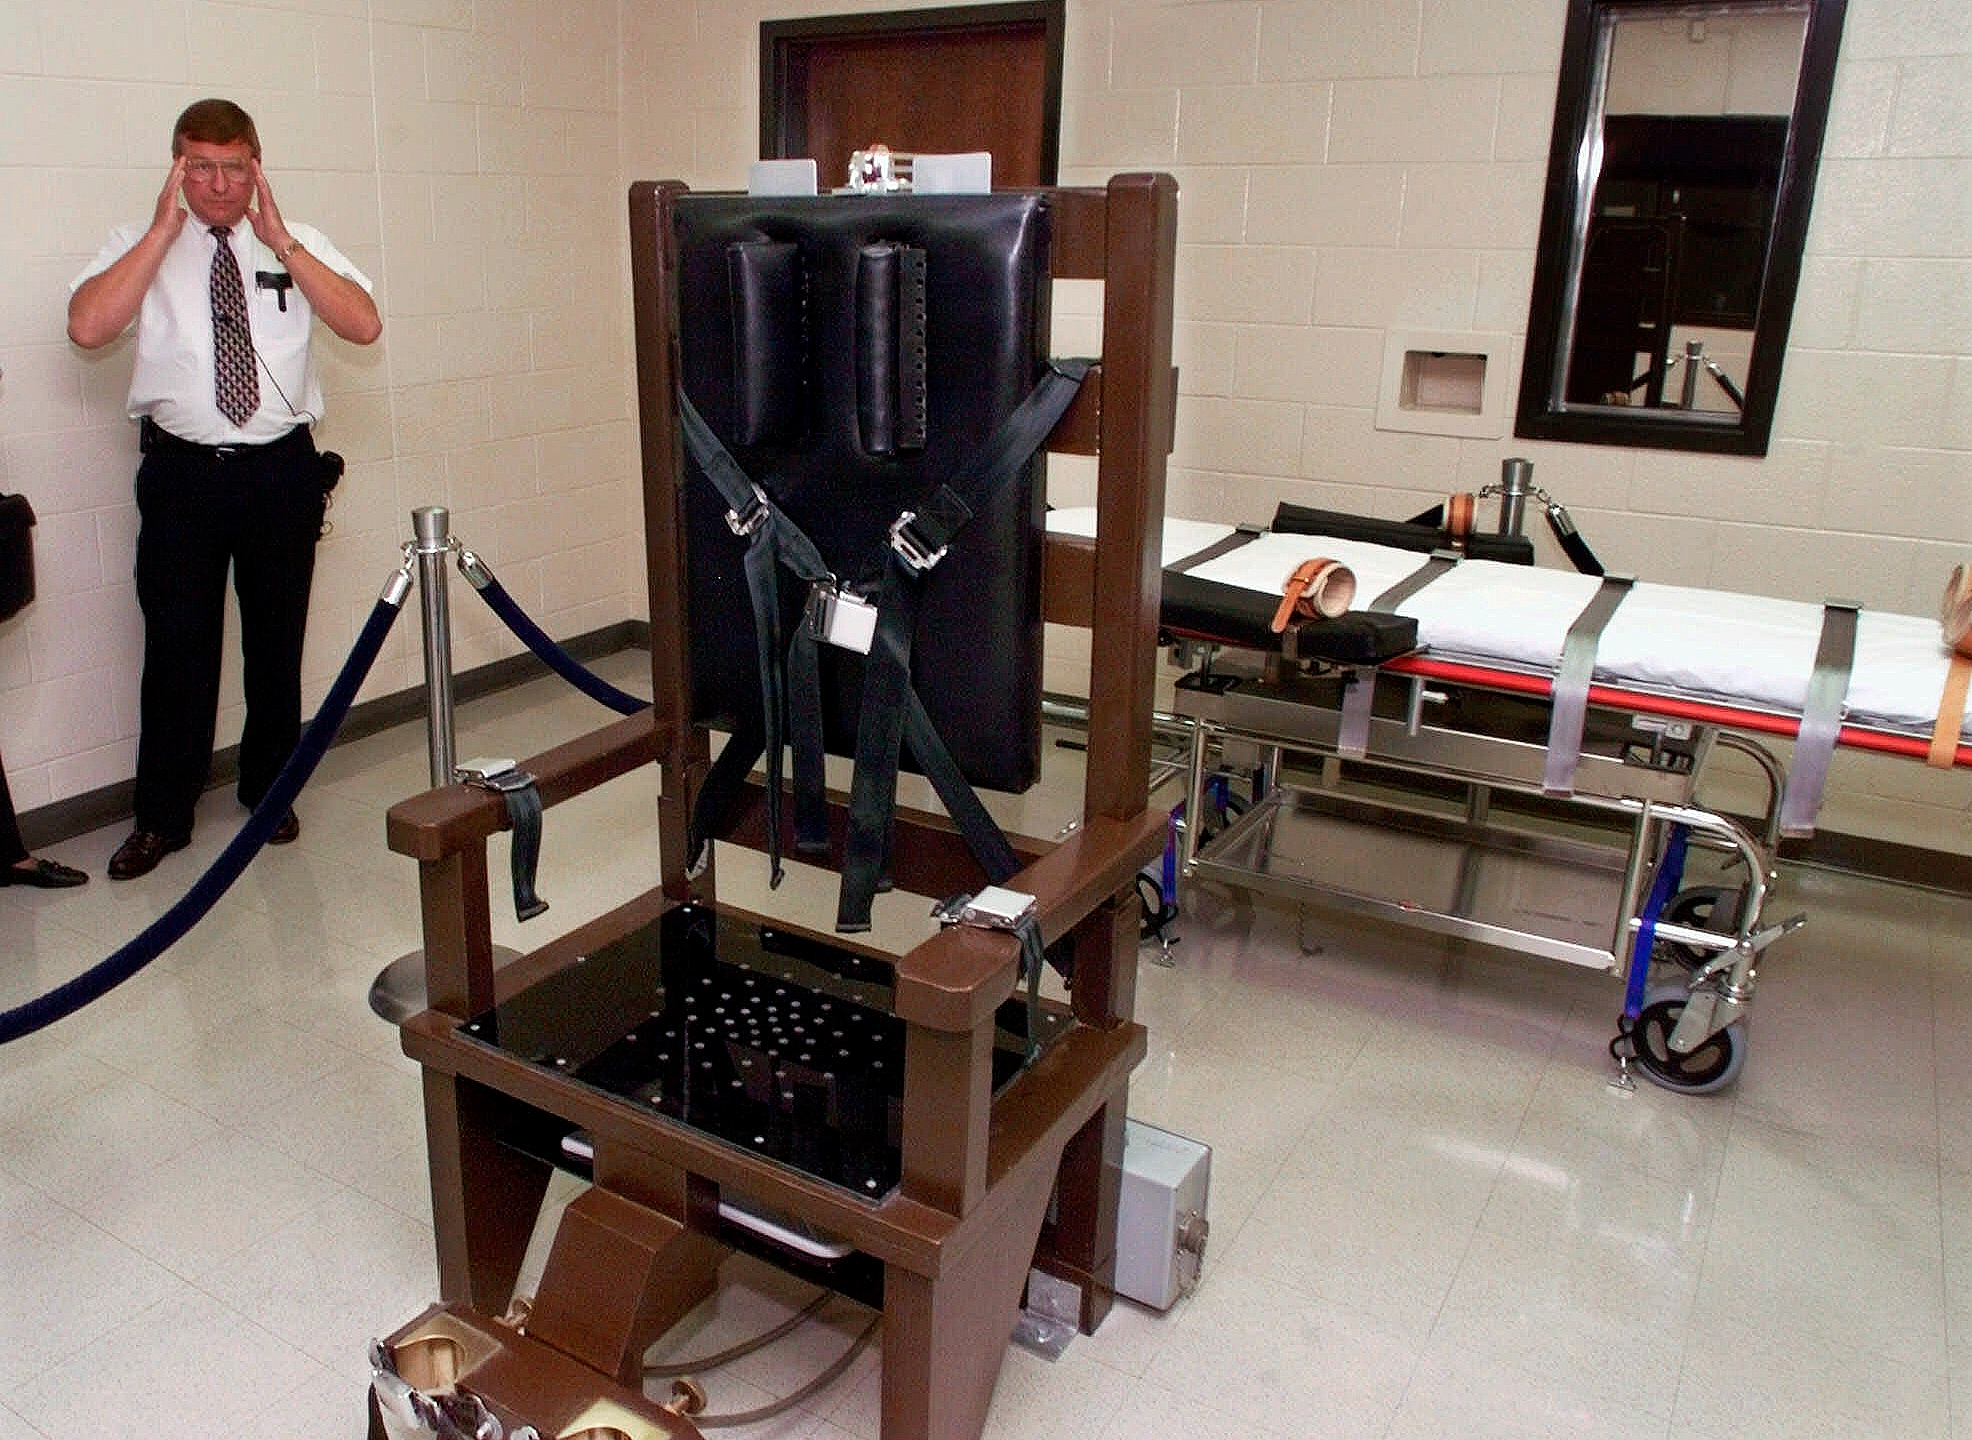 Electric_Chair_Tennessee_60603-159532.jpg51657999